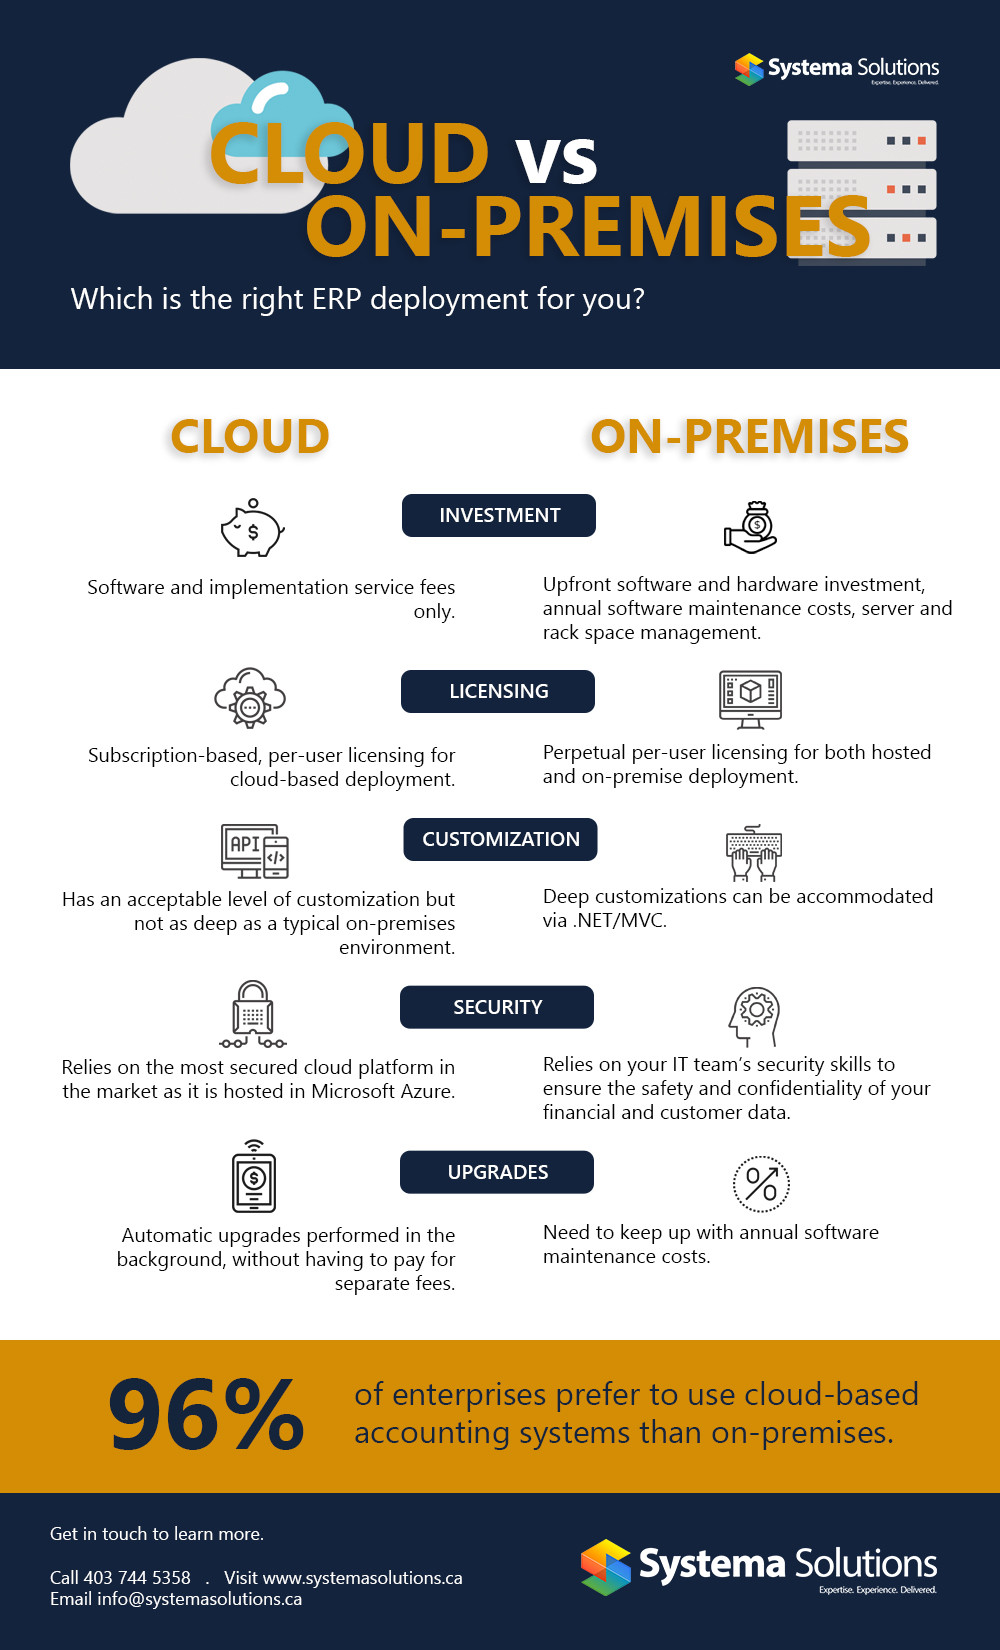 Cloud vs On-Premises: Which is right for you Infographic